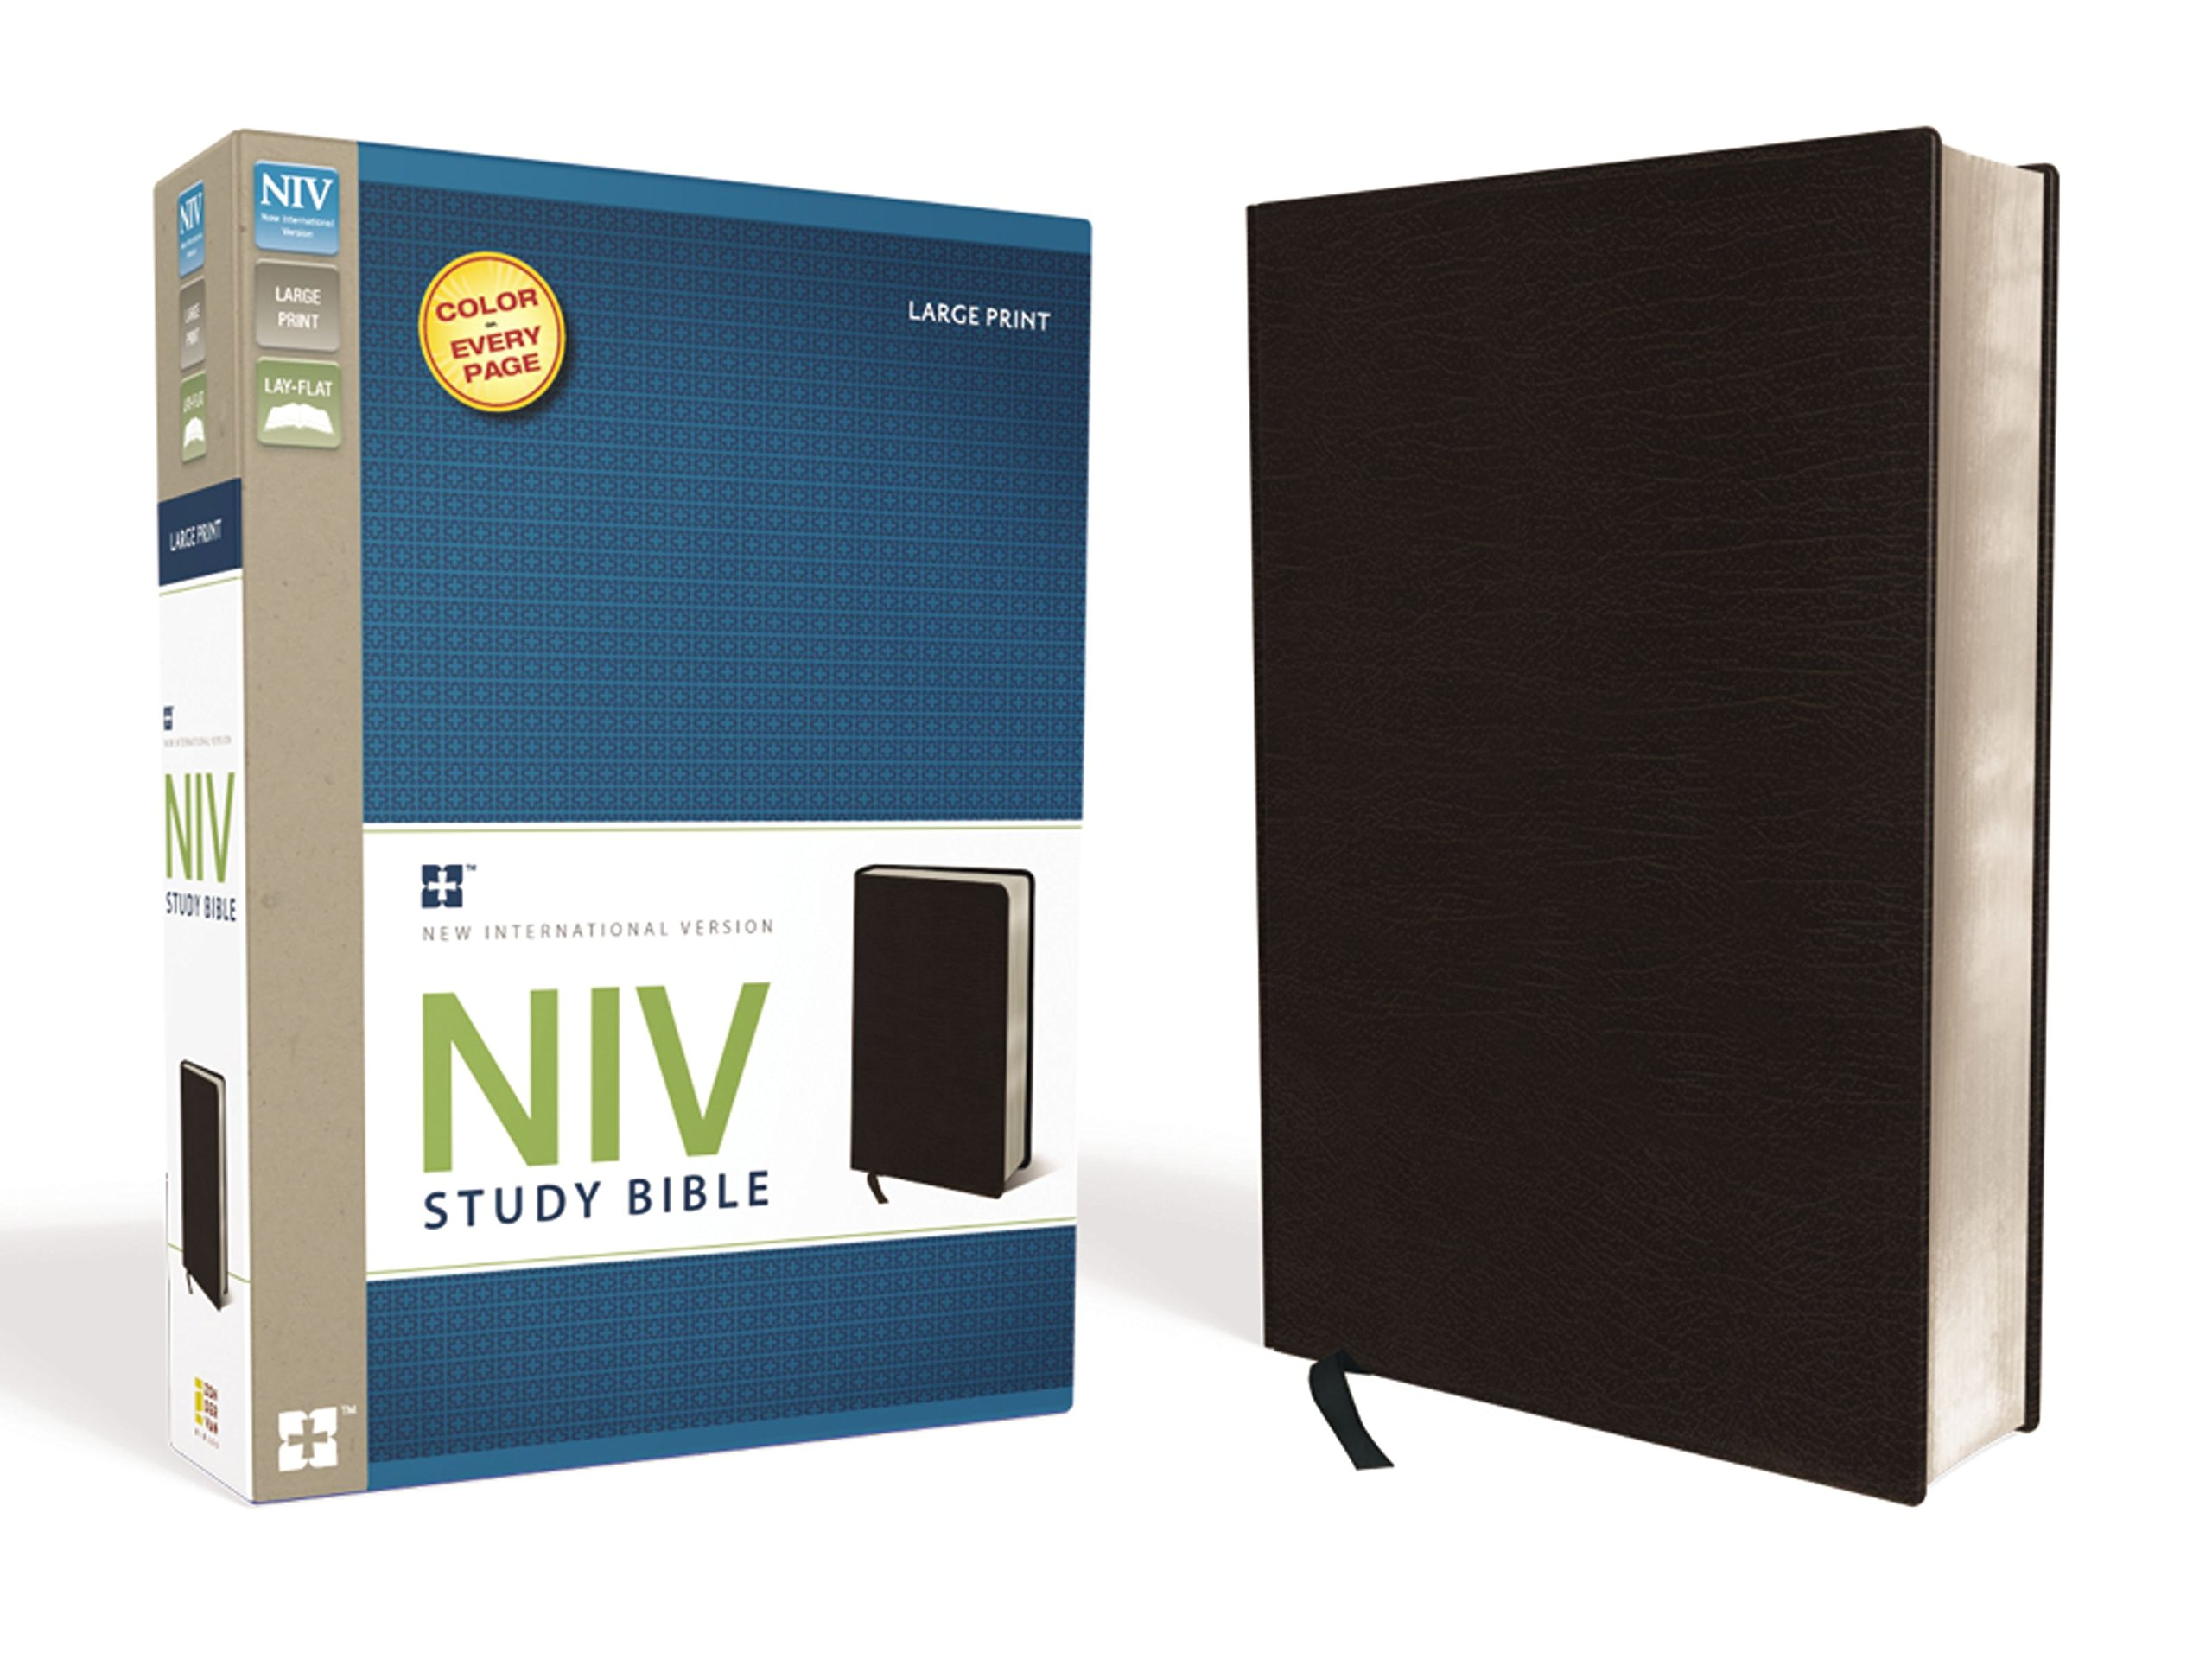 NIV Study Bible, Large Print, Bonded Leather, Black, Red Letter Edition